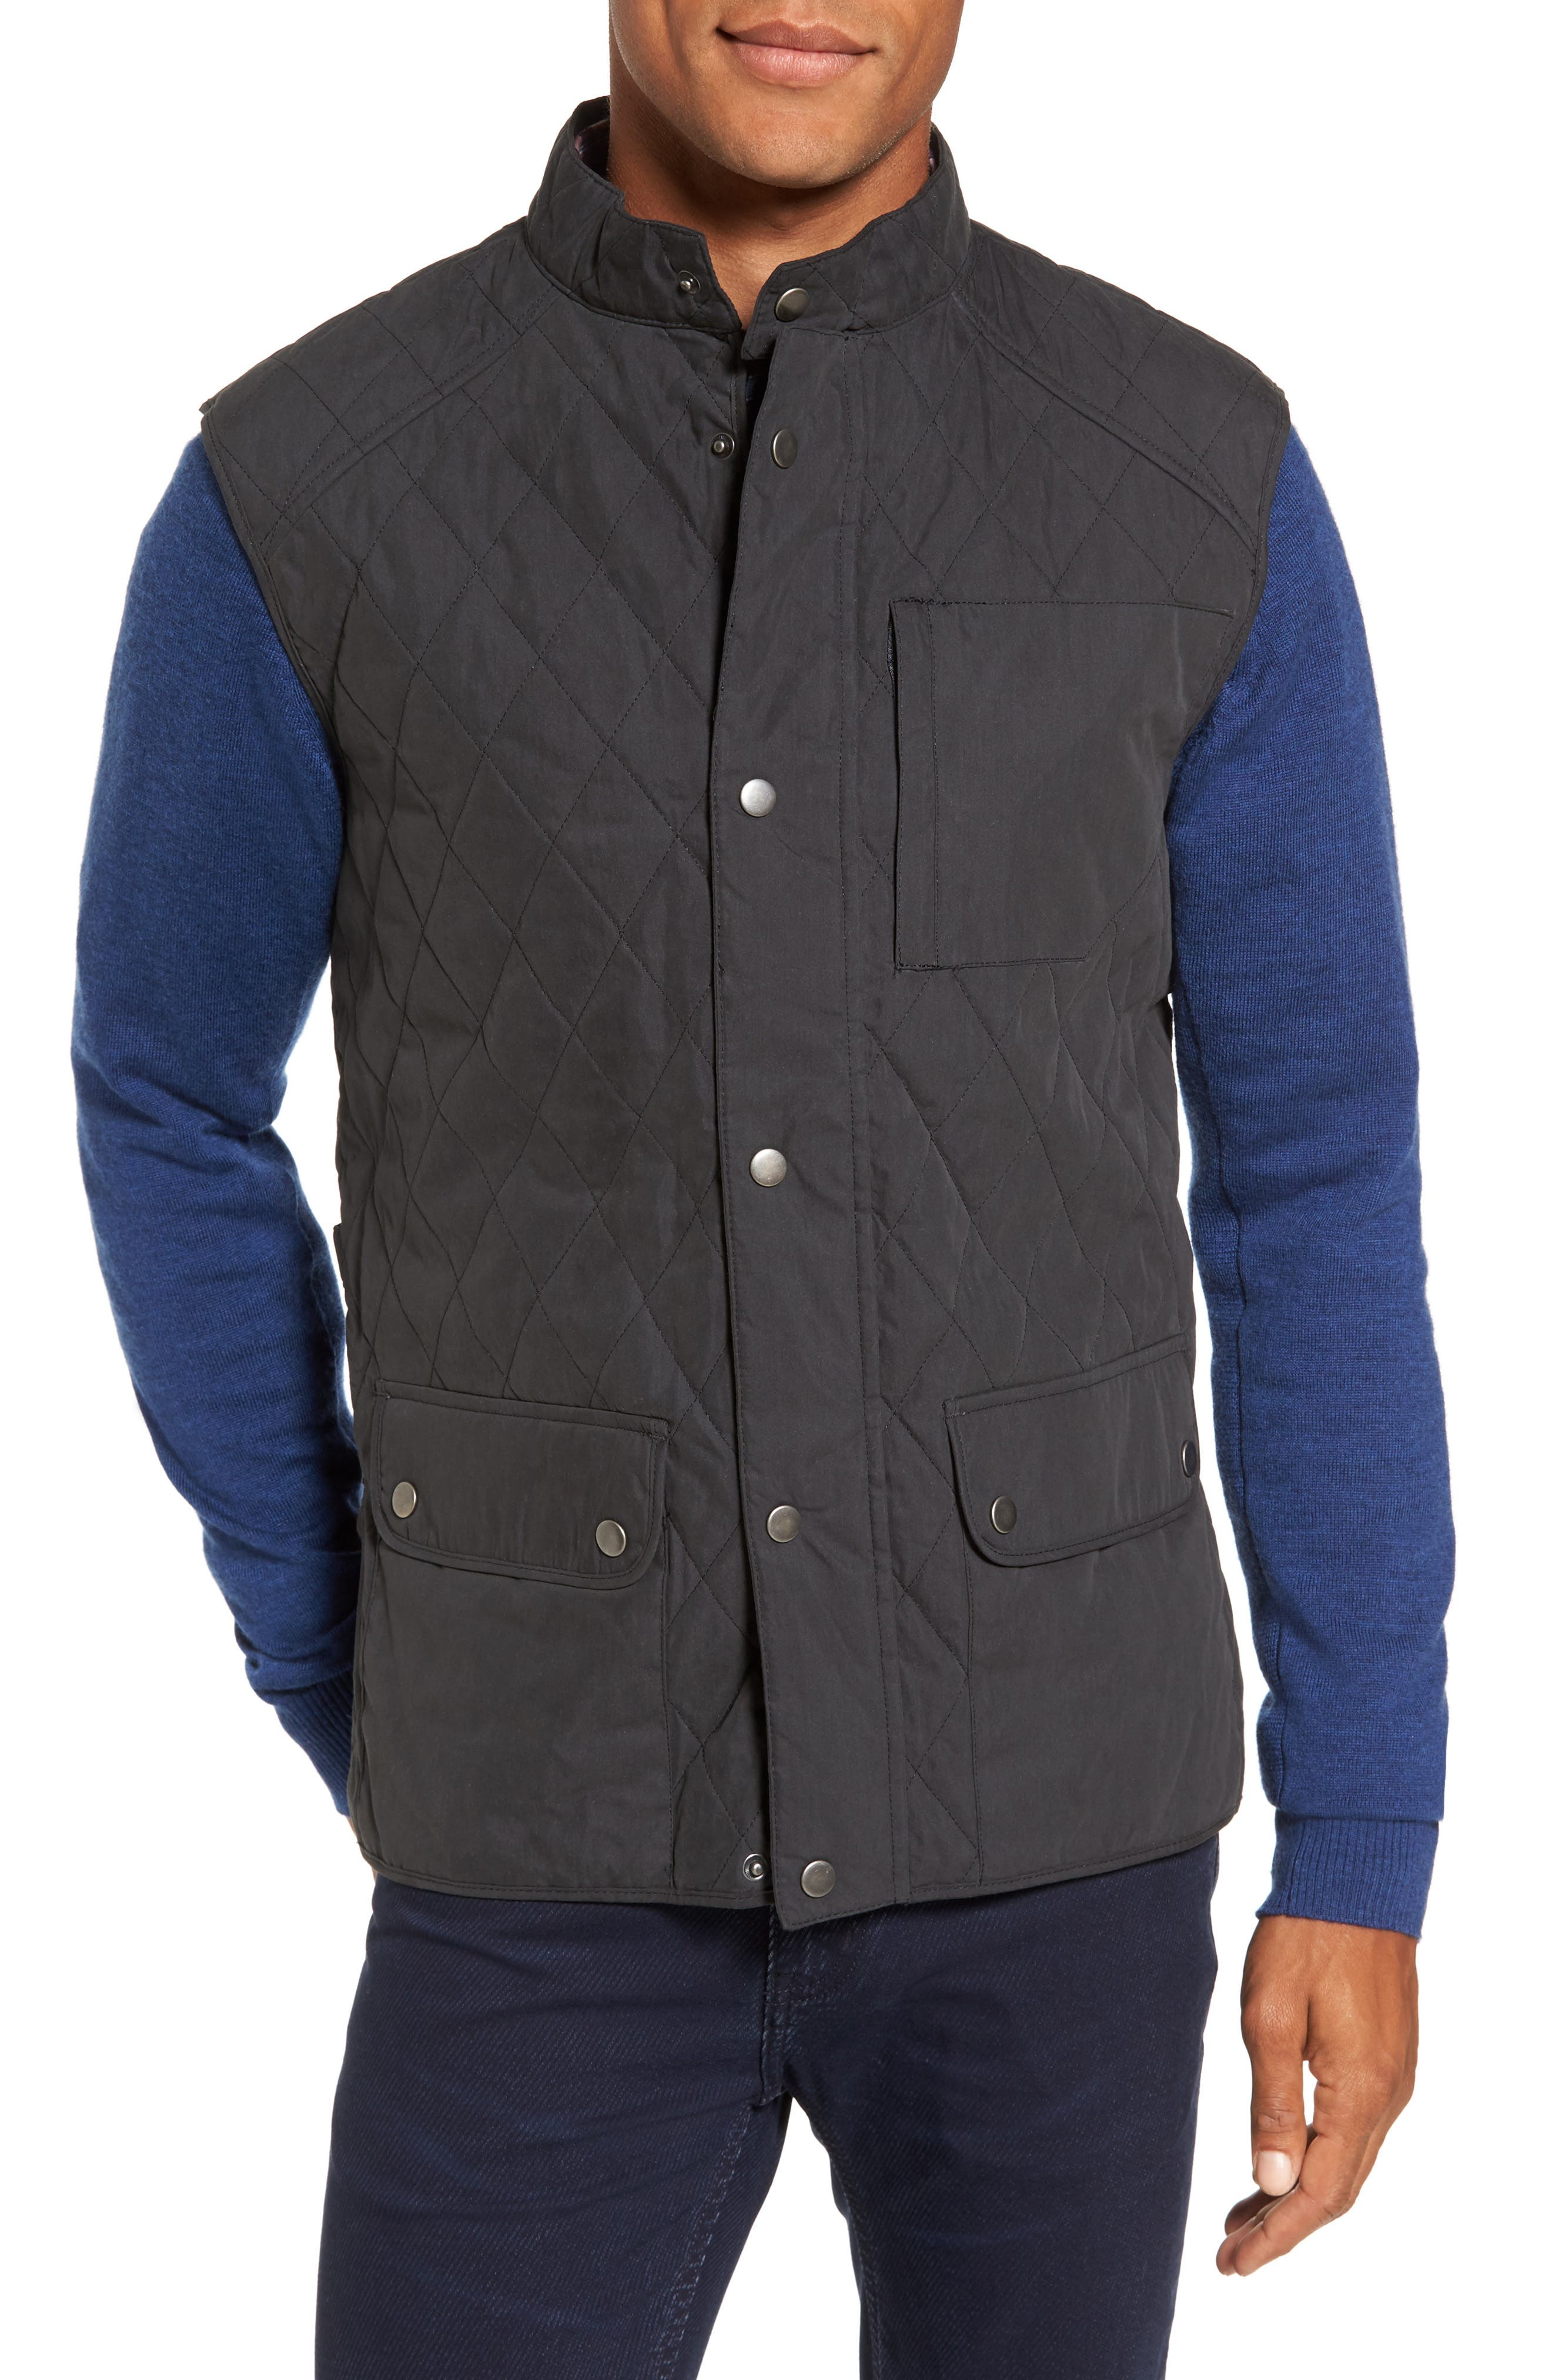 3-in-1 Waxed Cotton Jacket with Removable Vest,                             Alternate thumbnail 4, color,                             250